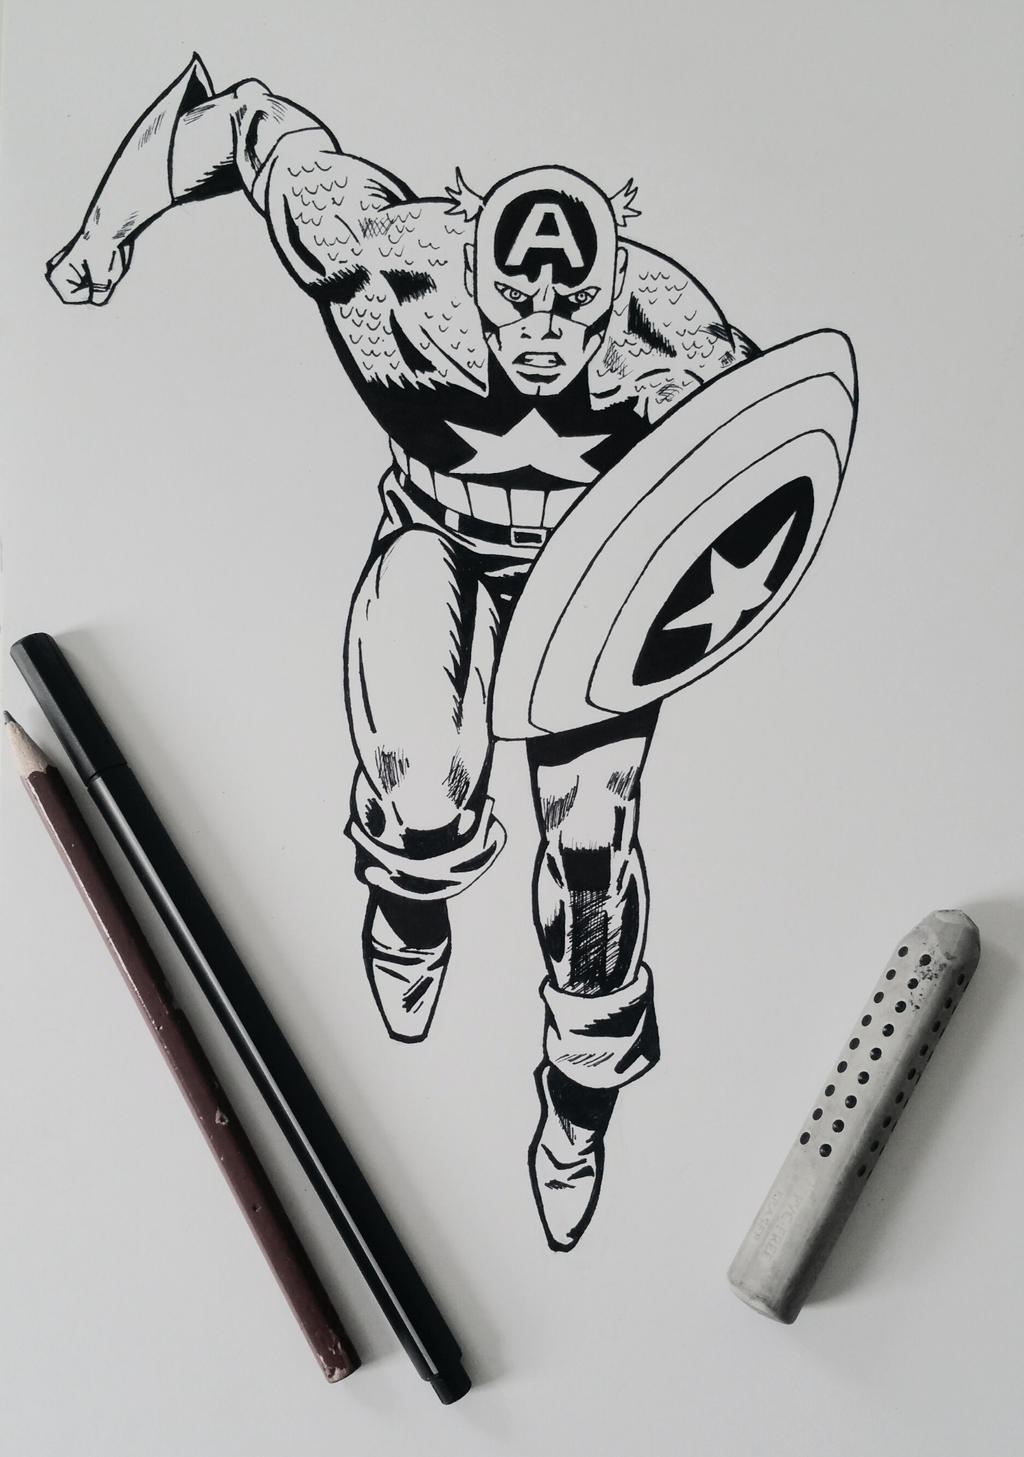 Line Drawing Usa : Captain america line art by xxinfinite firexx on deviantart